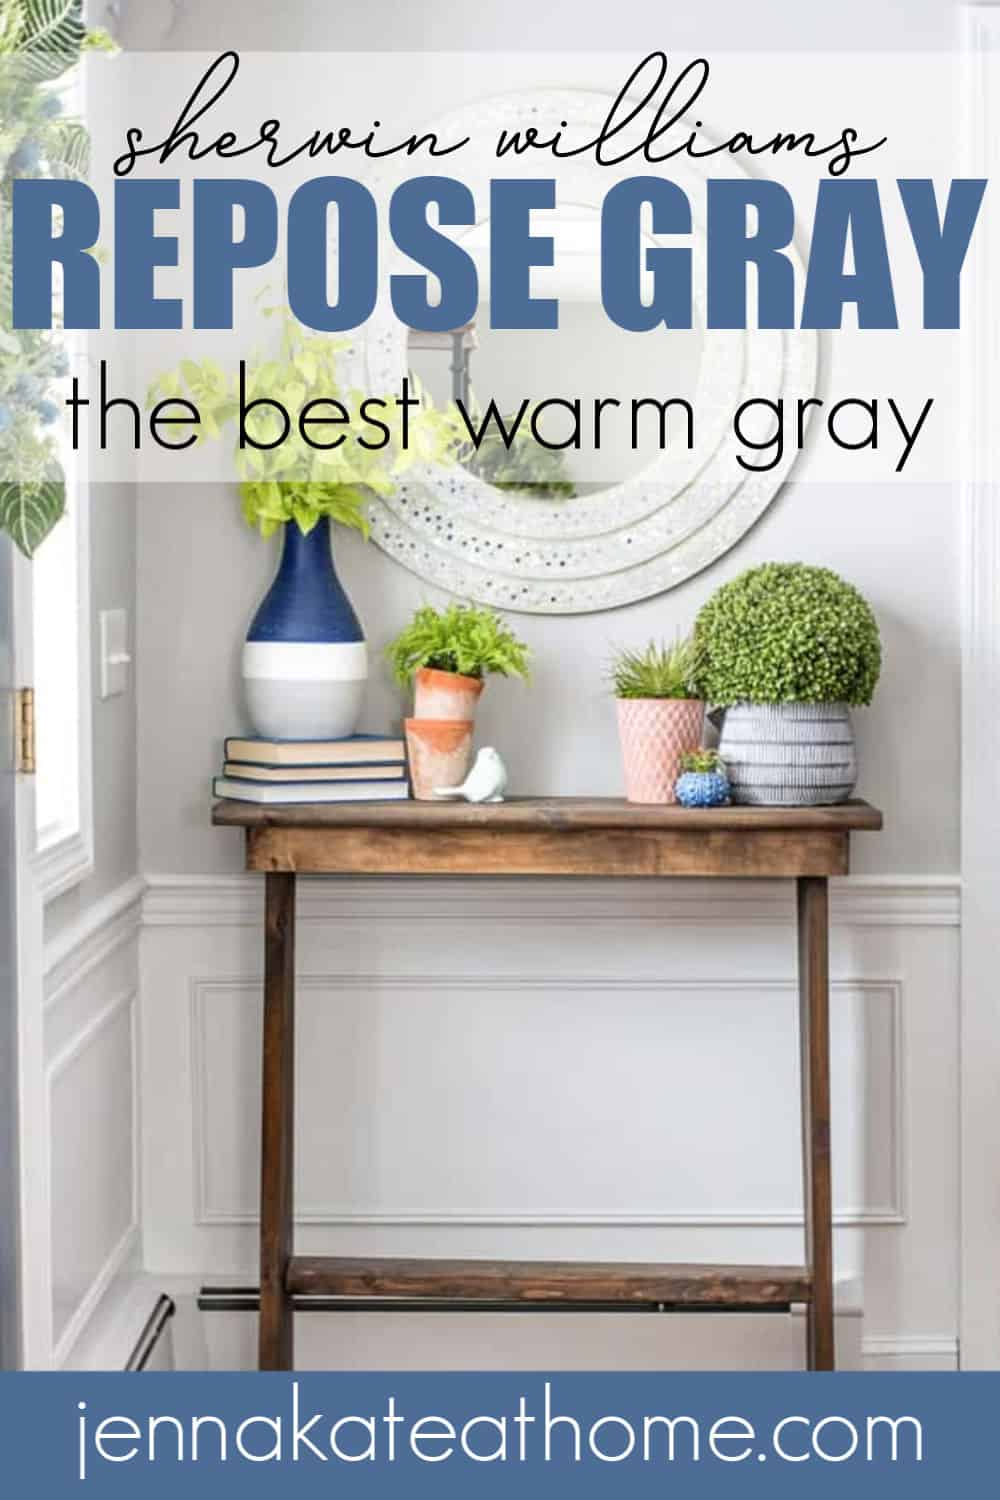 sherwin williams repose gray pinterest